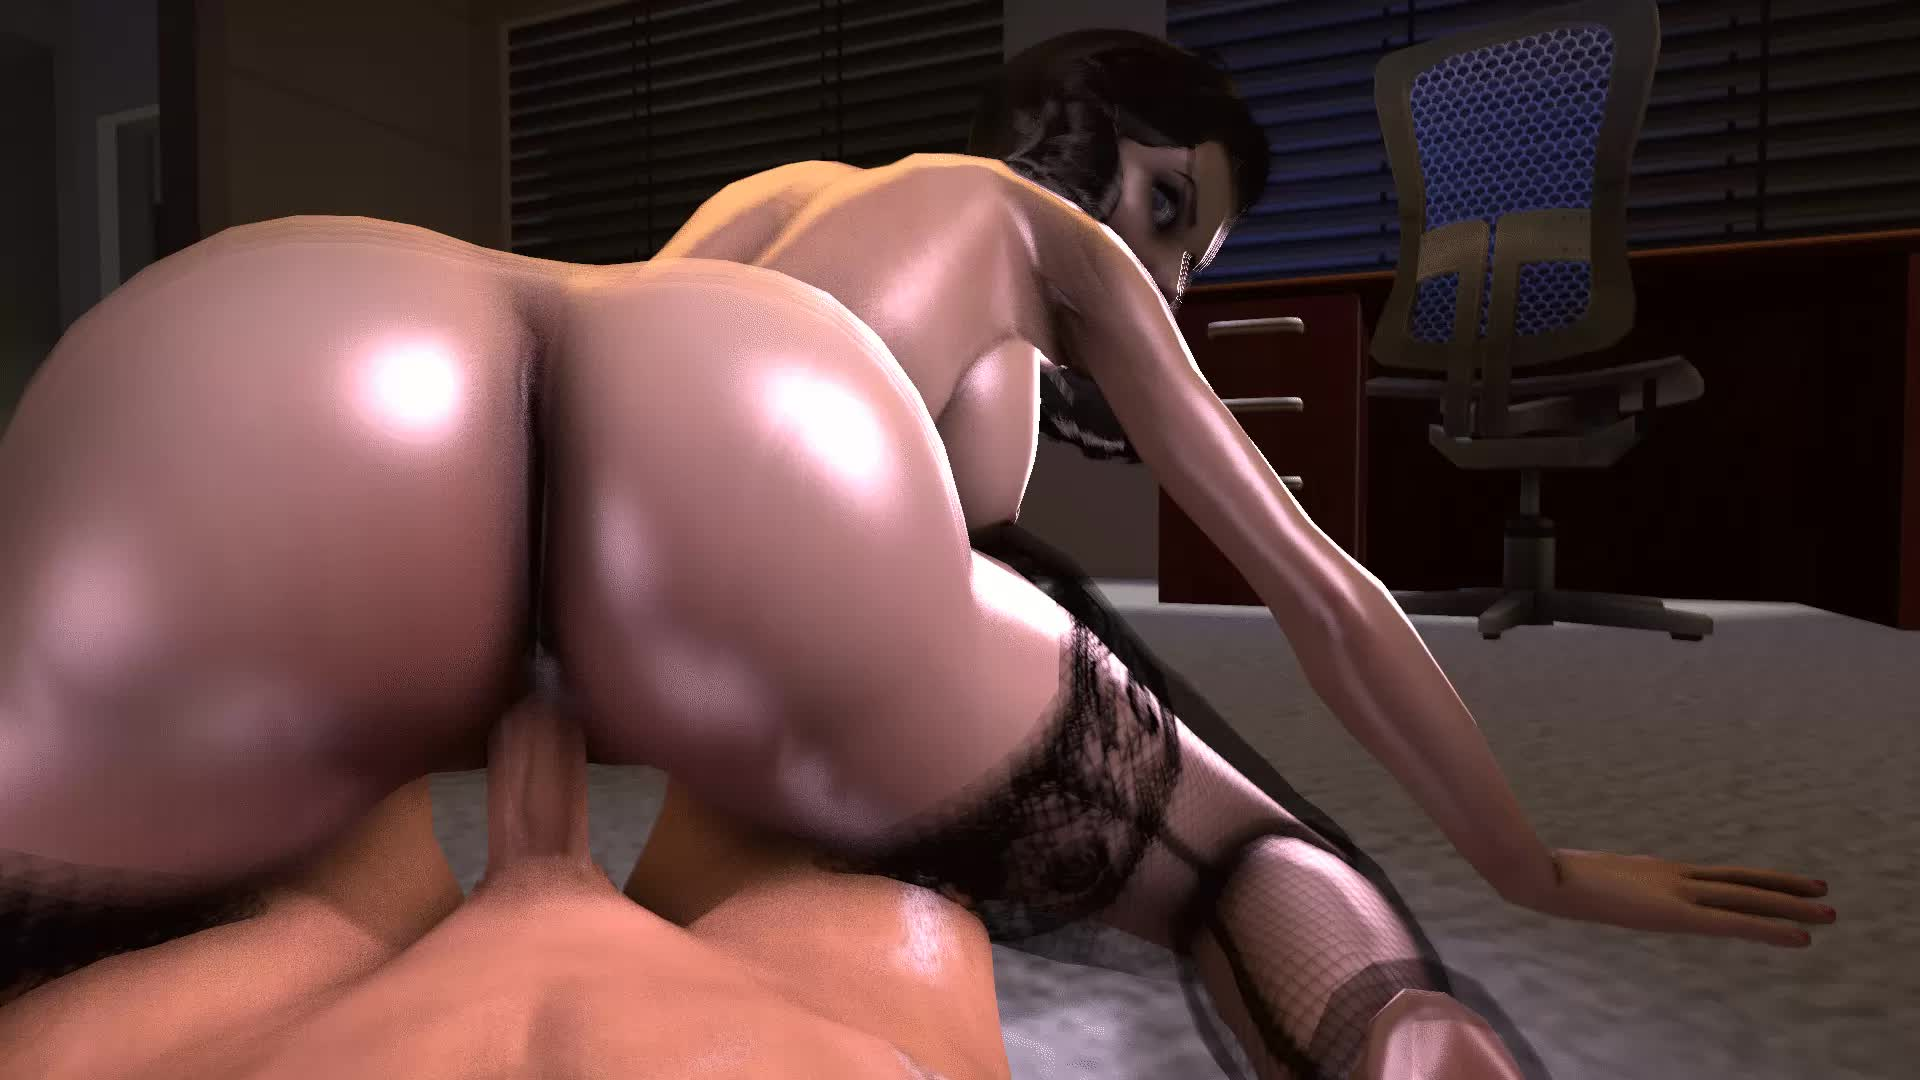 Video games sex gif 8